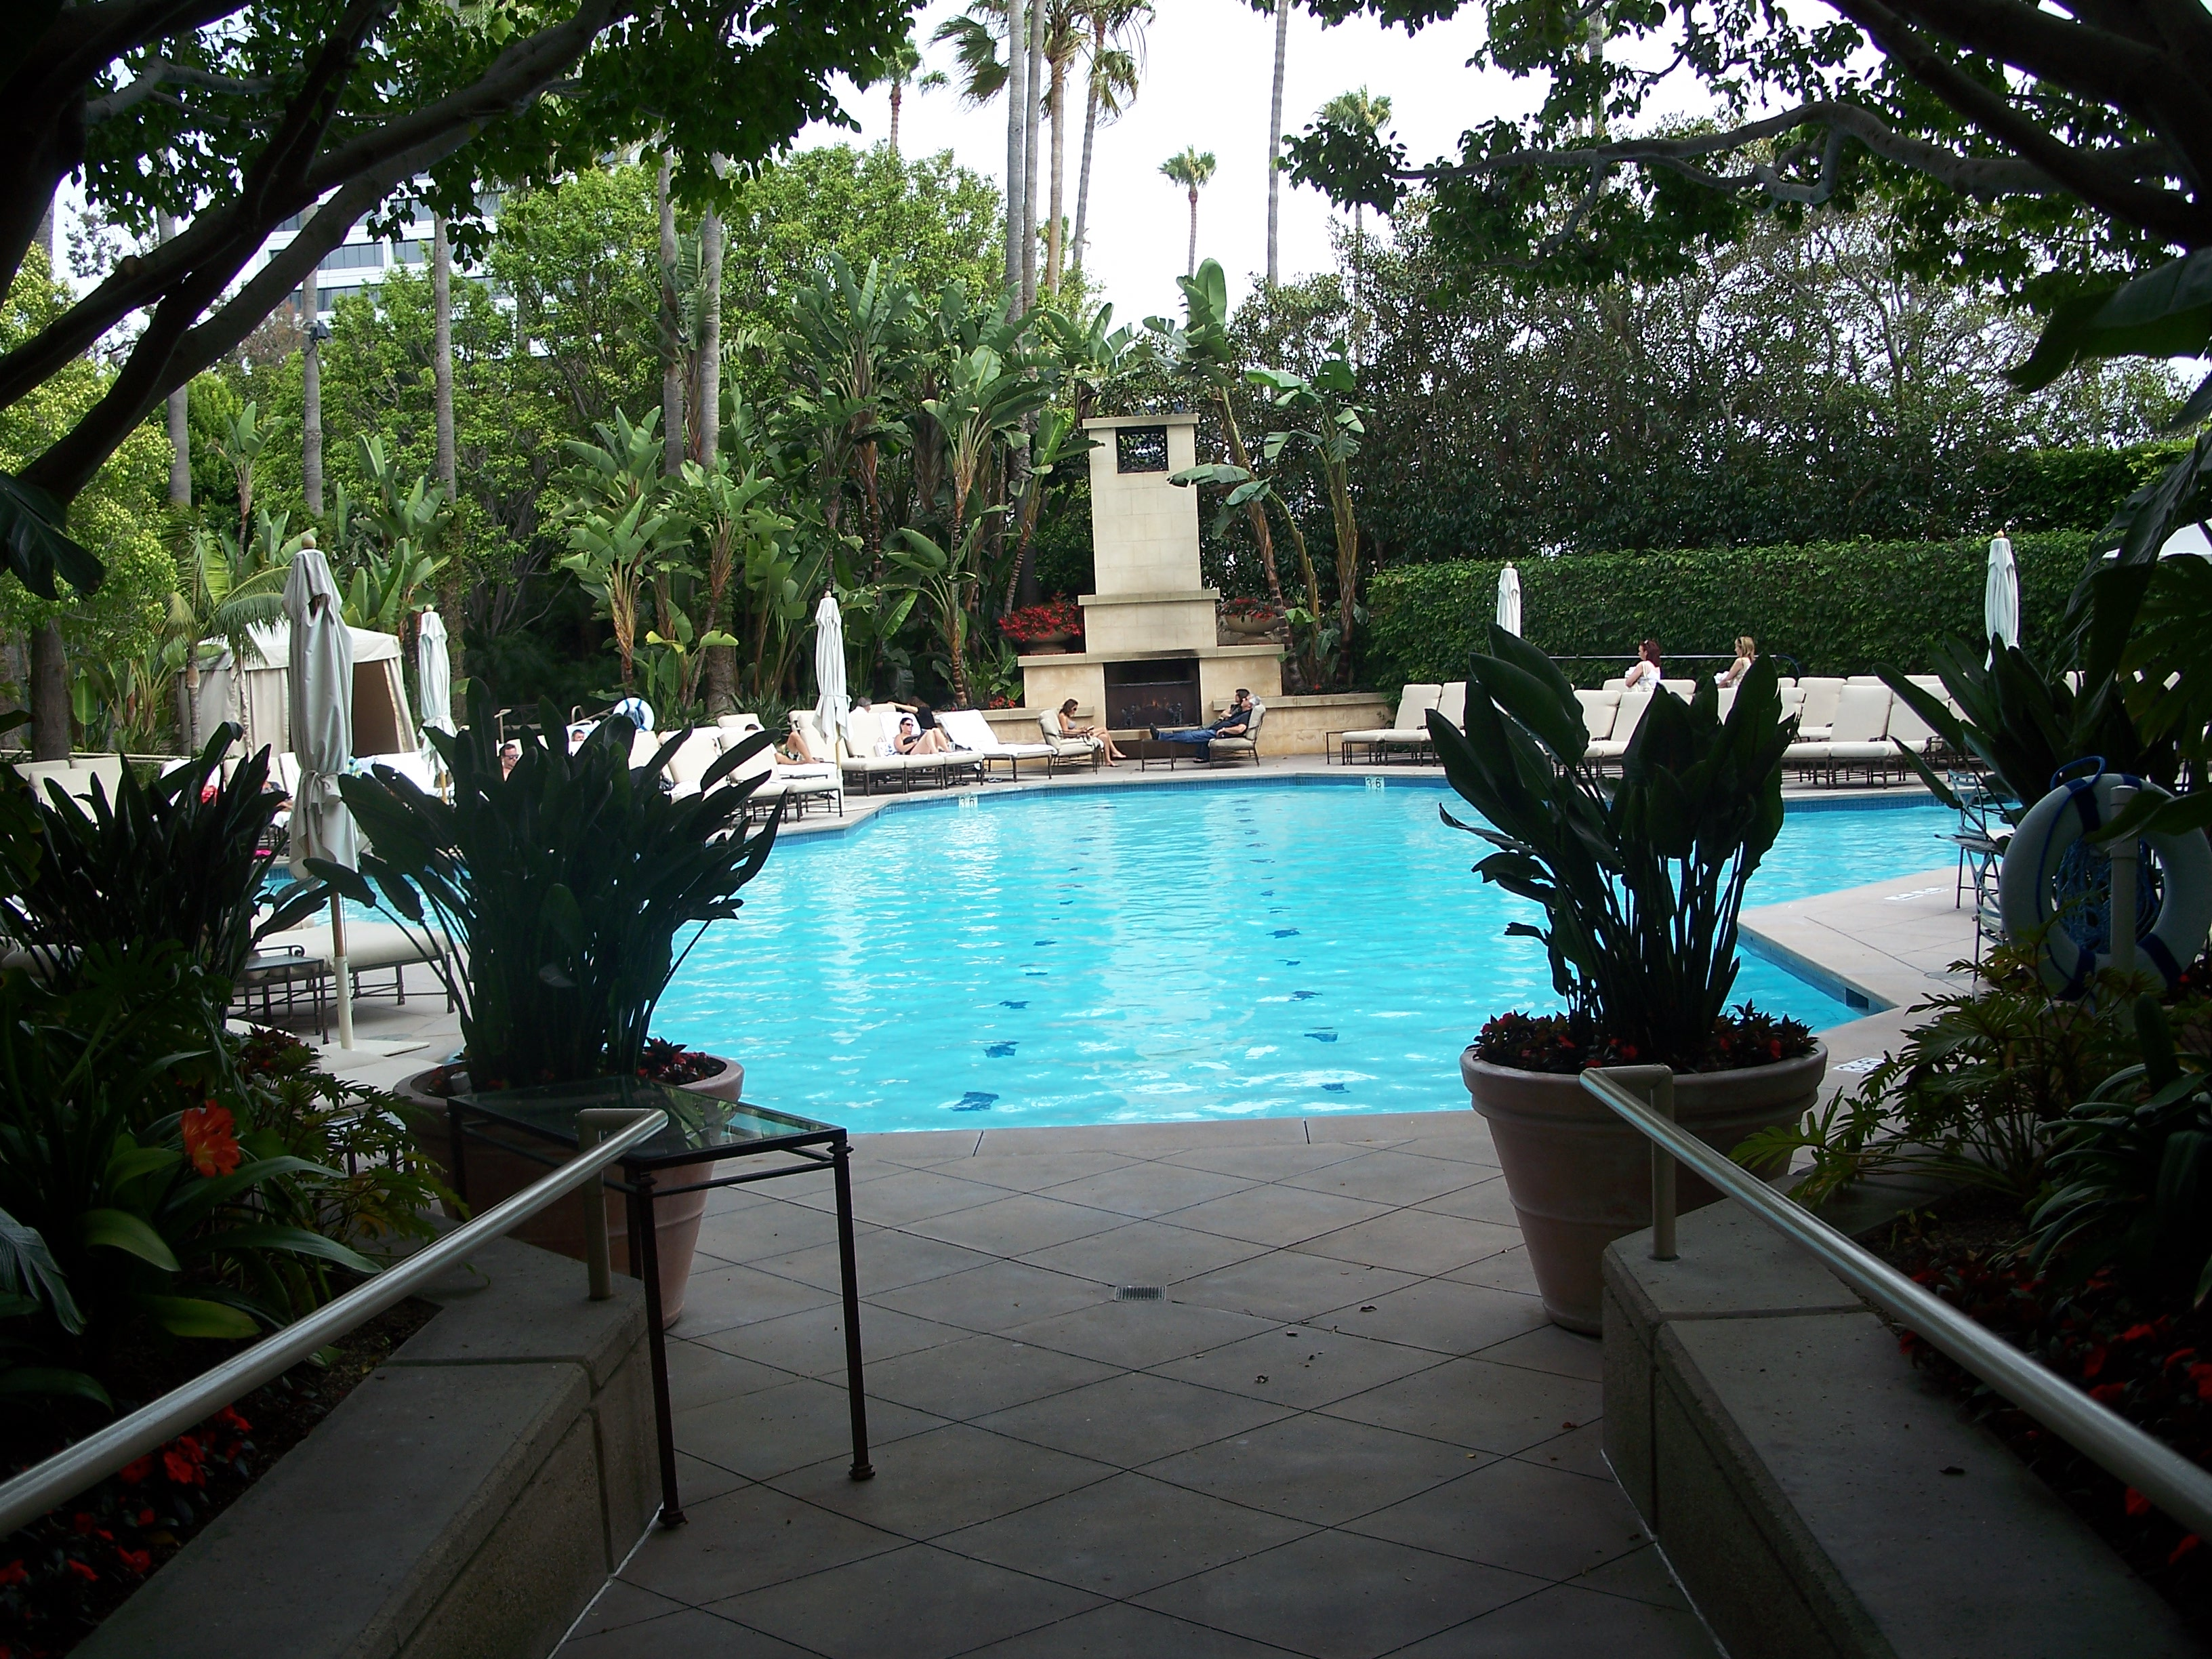 Pool The Island Hotel S Exotic Swimming